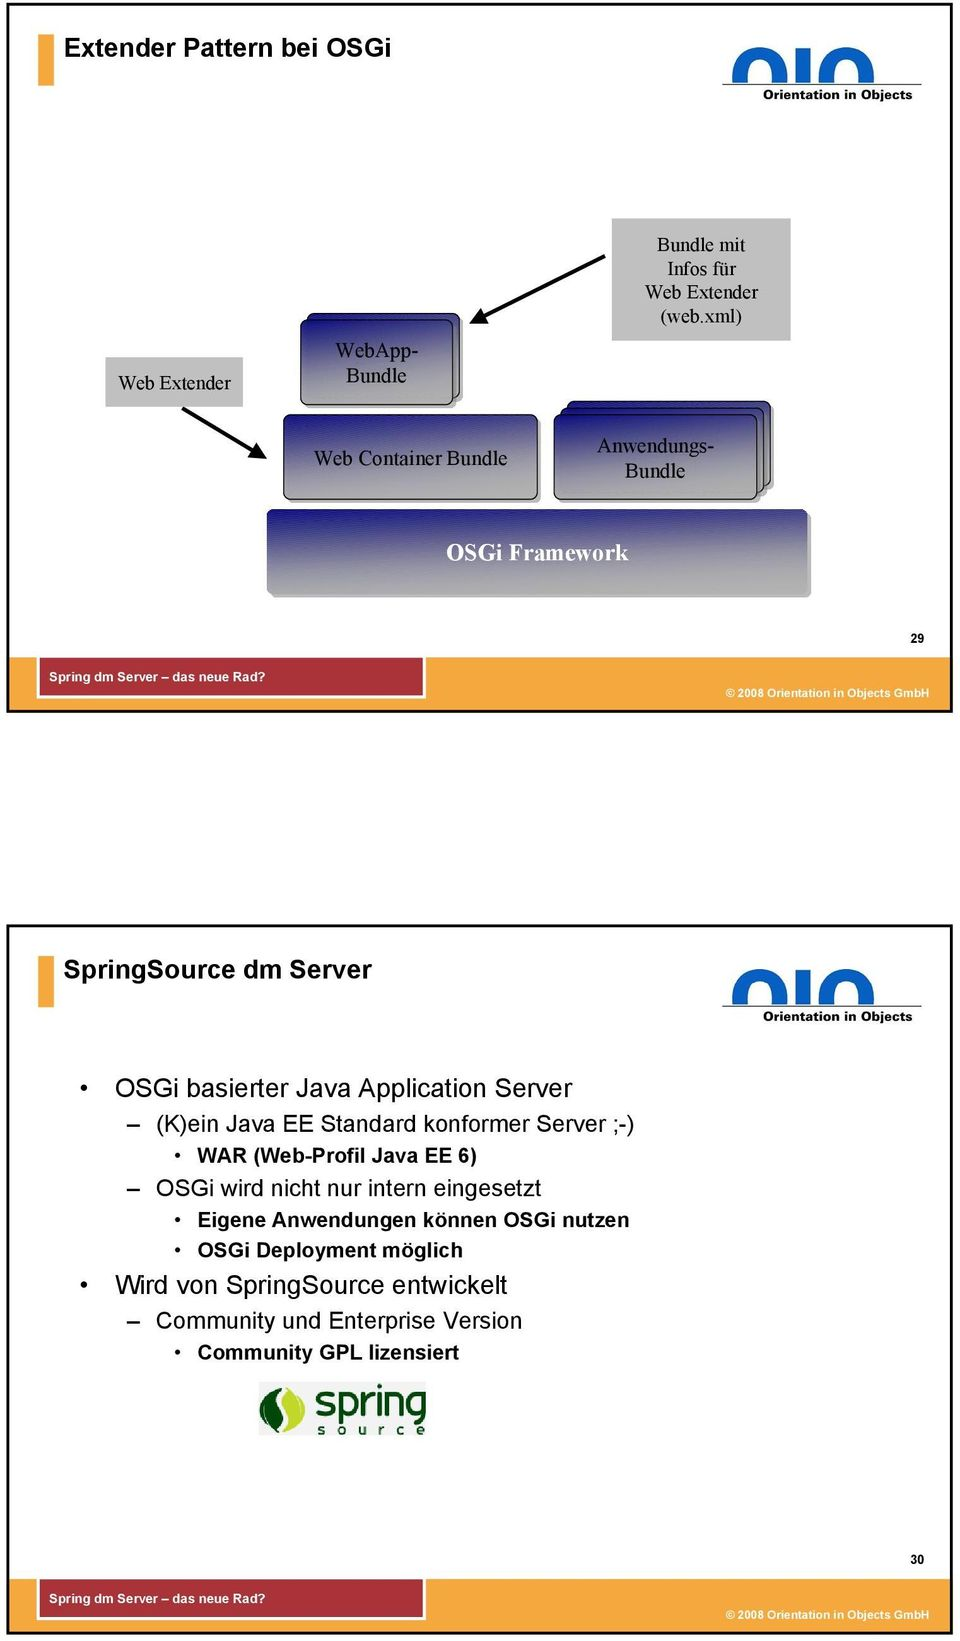 xml) OSGi Framework 29 SpringSource dm Server OSGi basierter Java Application Server (K)ein Java EE Standard konformer